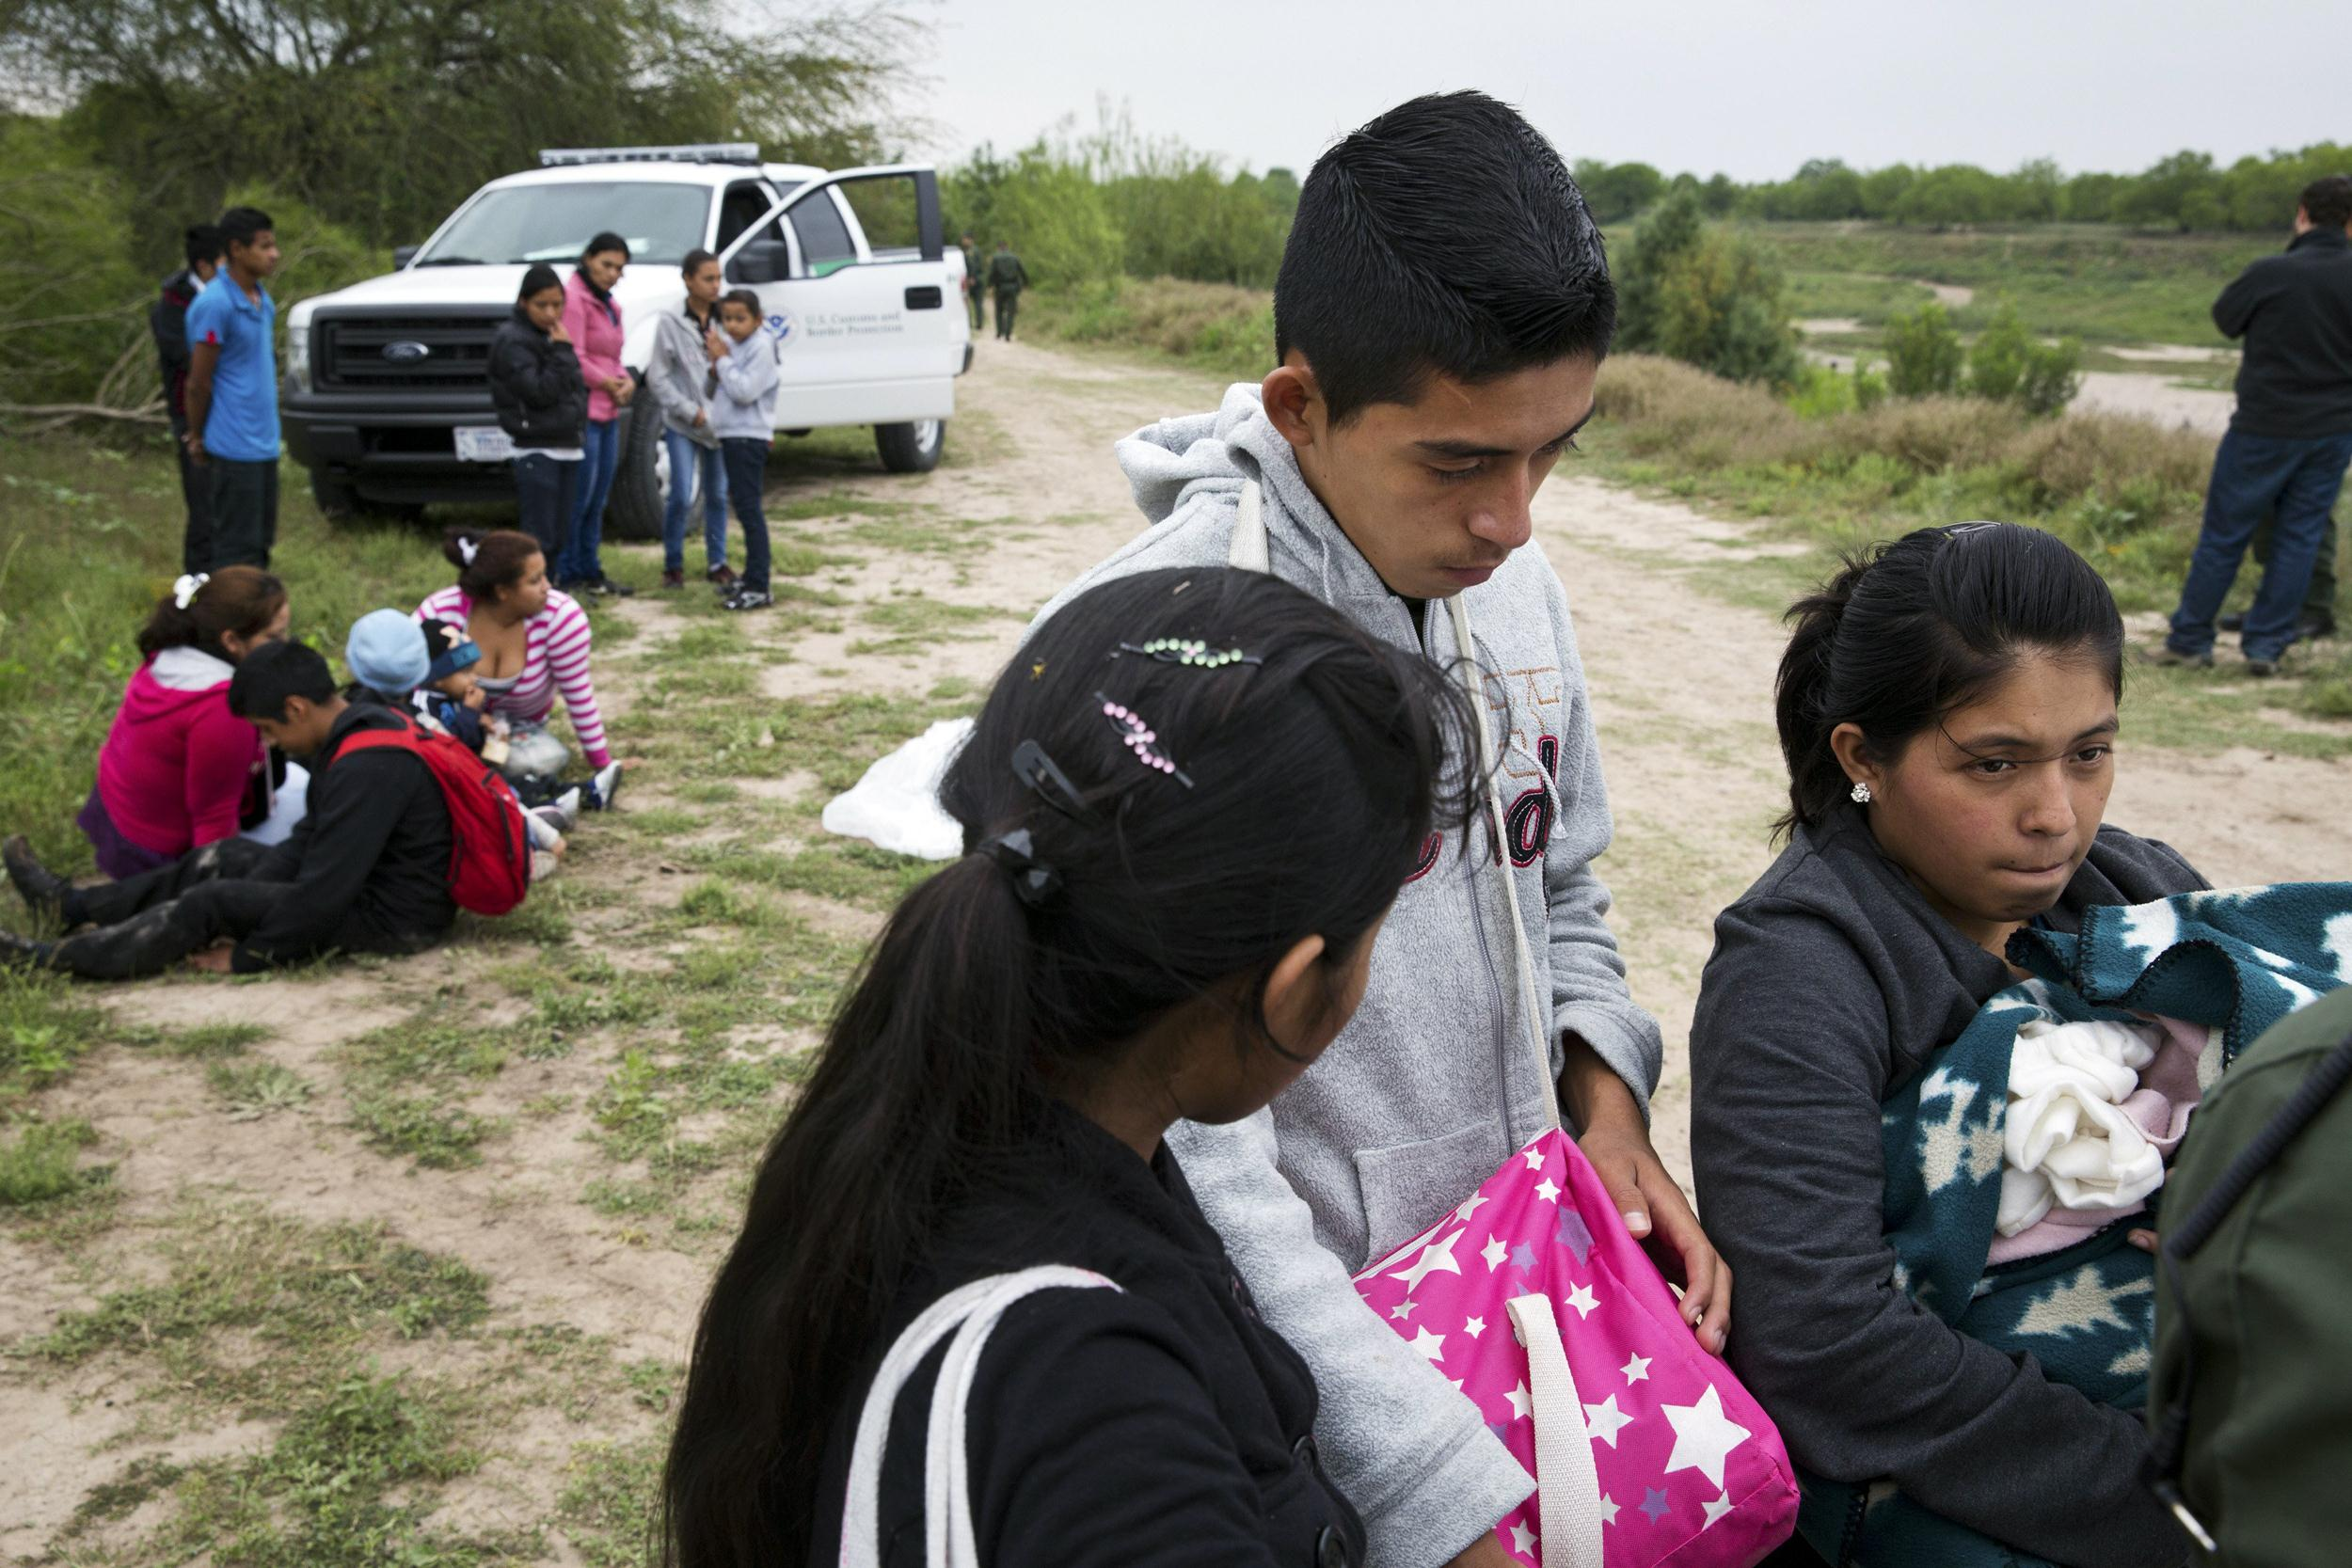 Image: U.S. Border Patrol agents detain a group of young migrants from Honduras